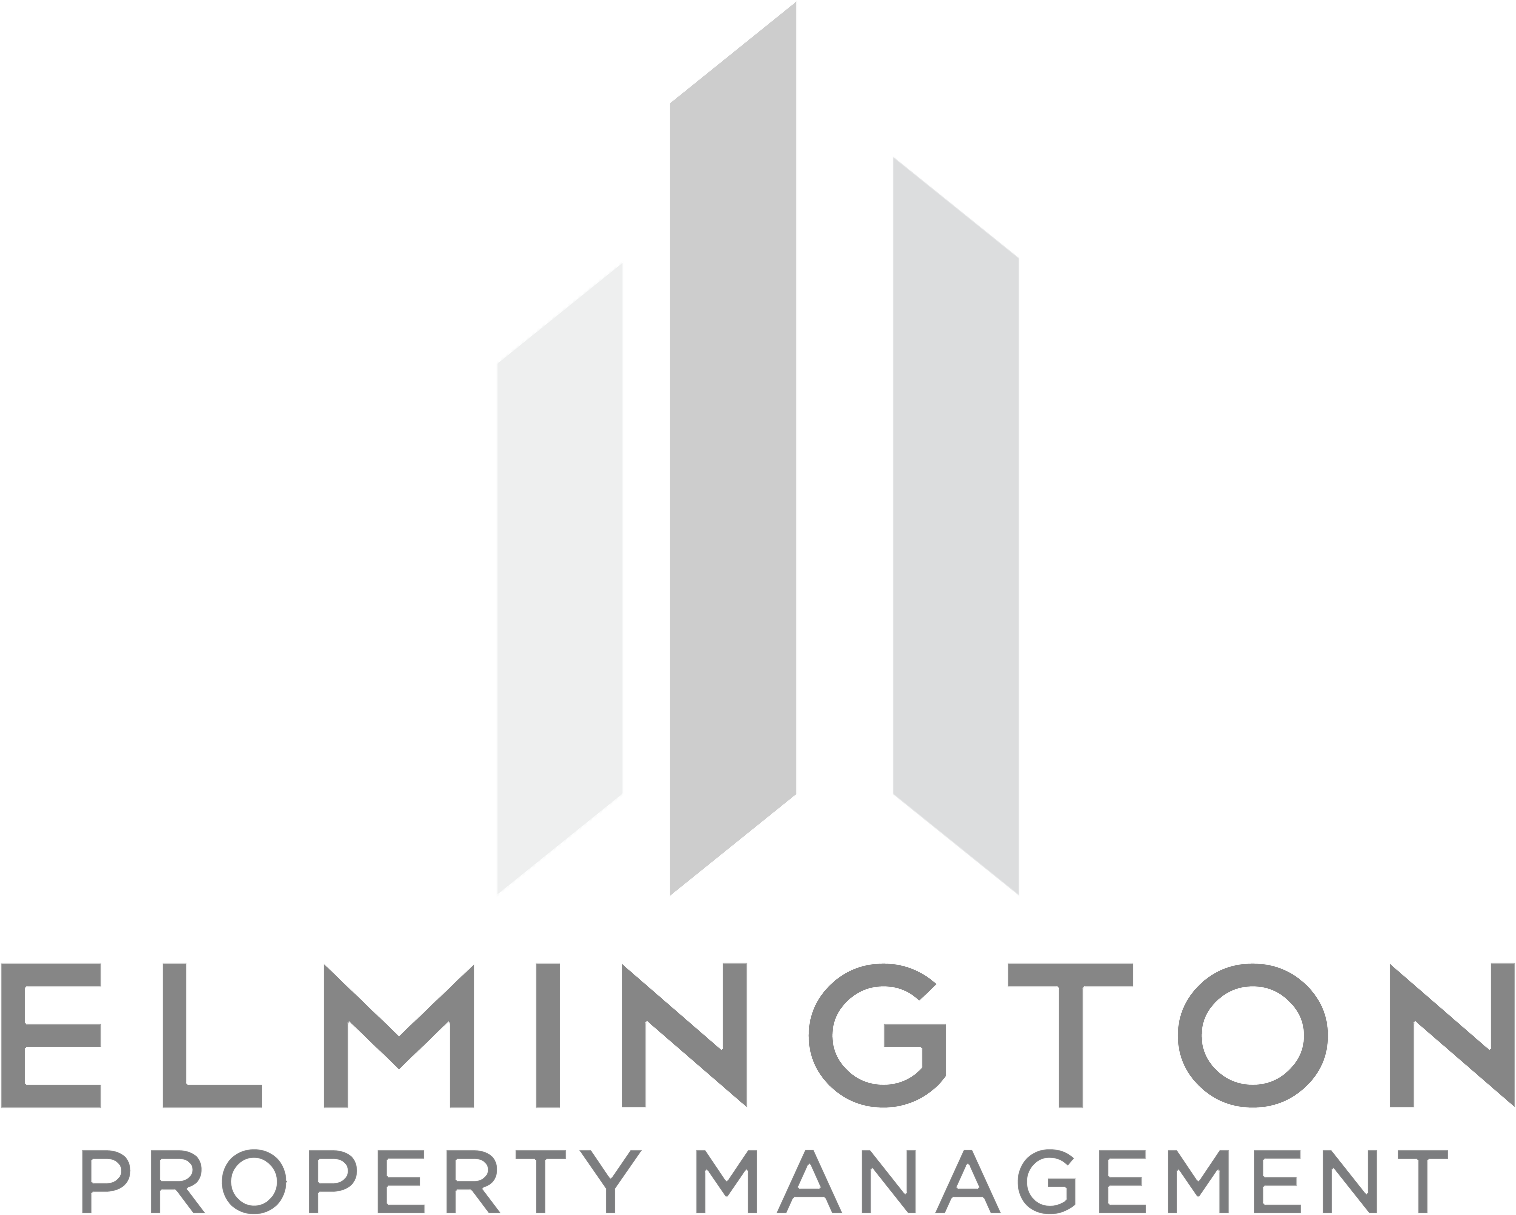 Elmington Property Management Logo